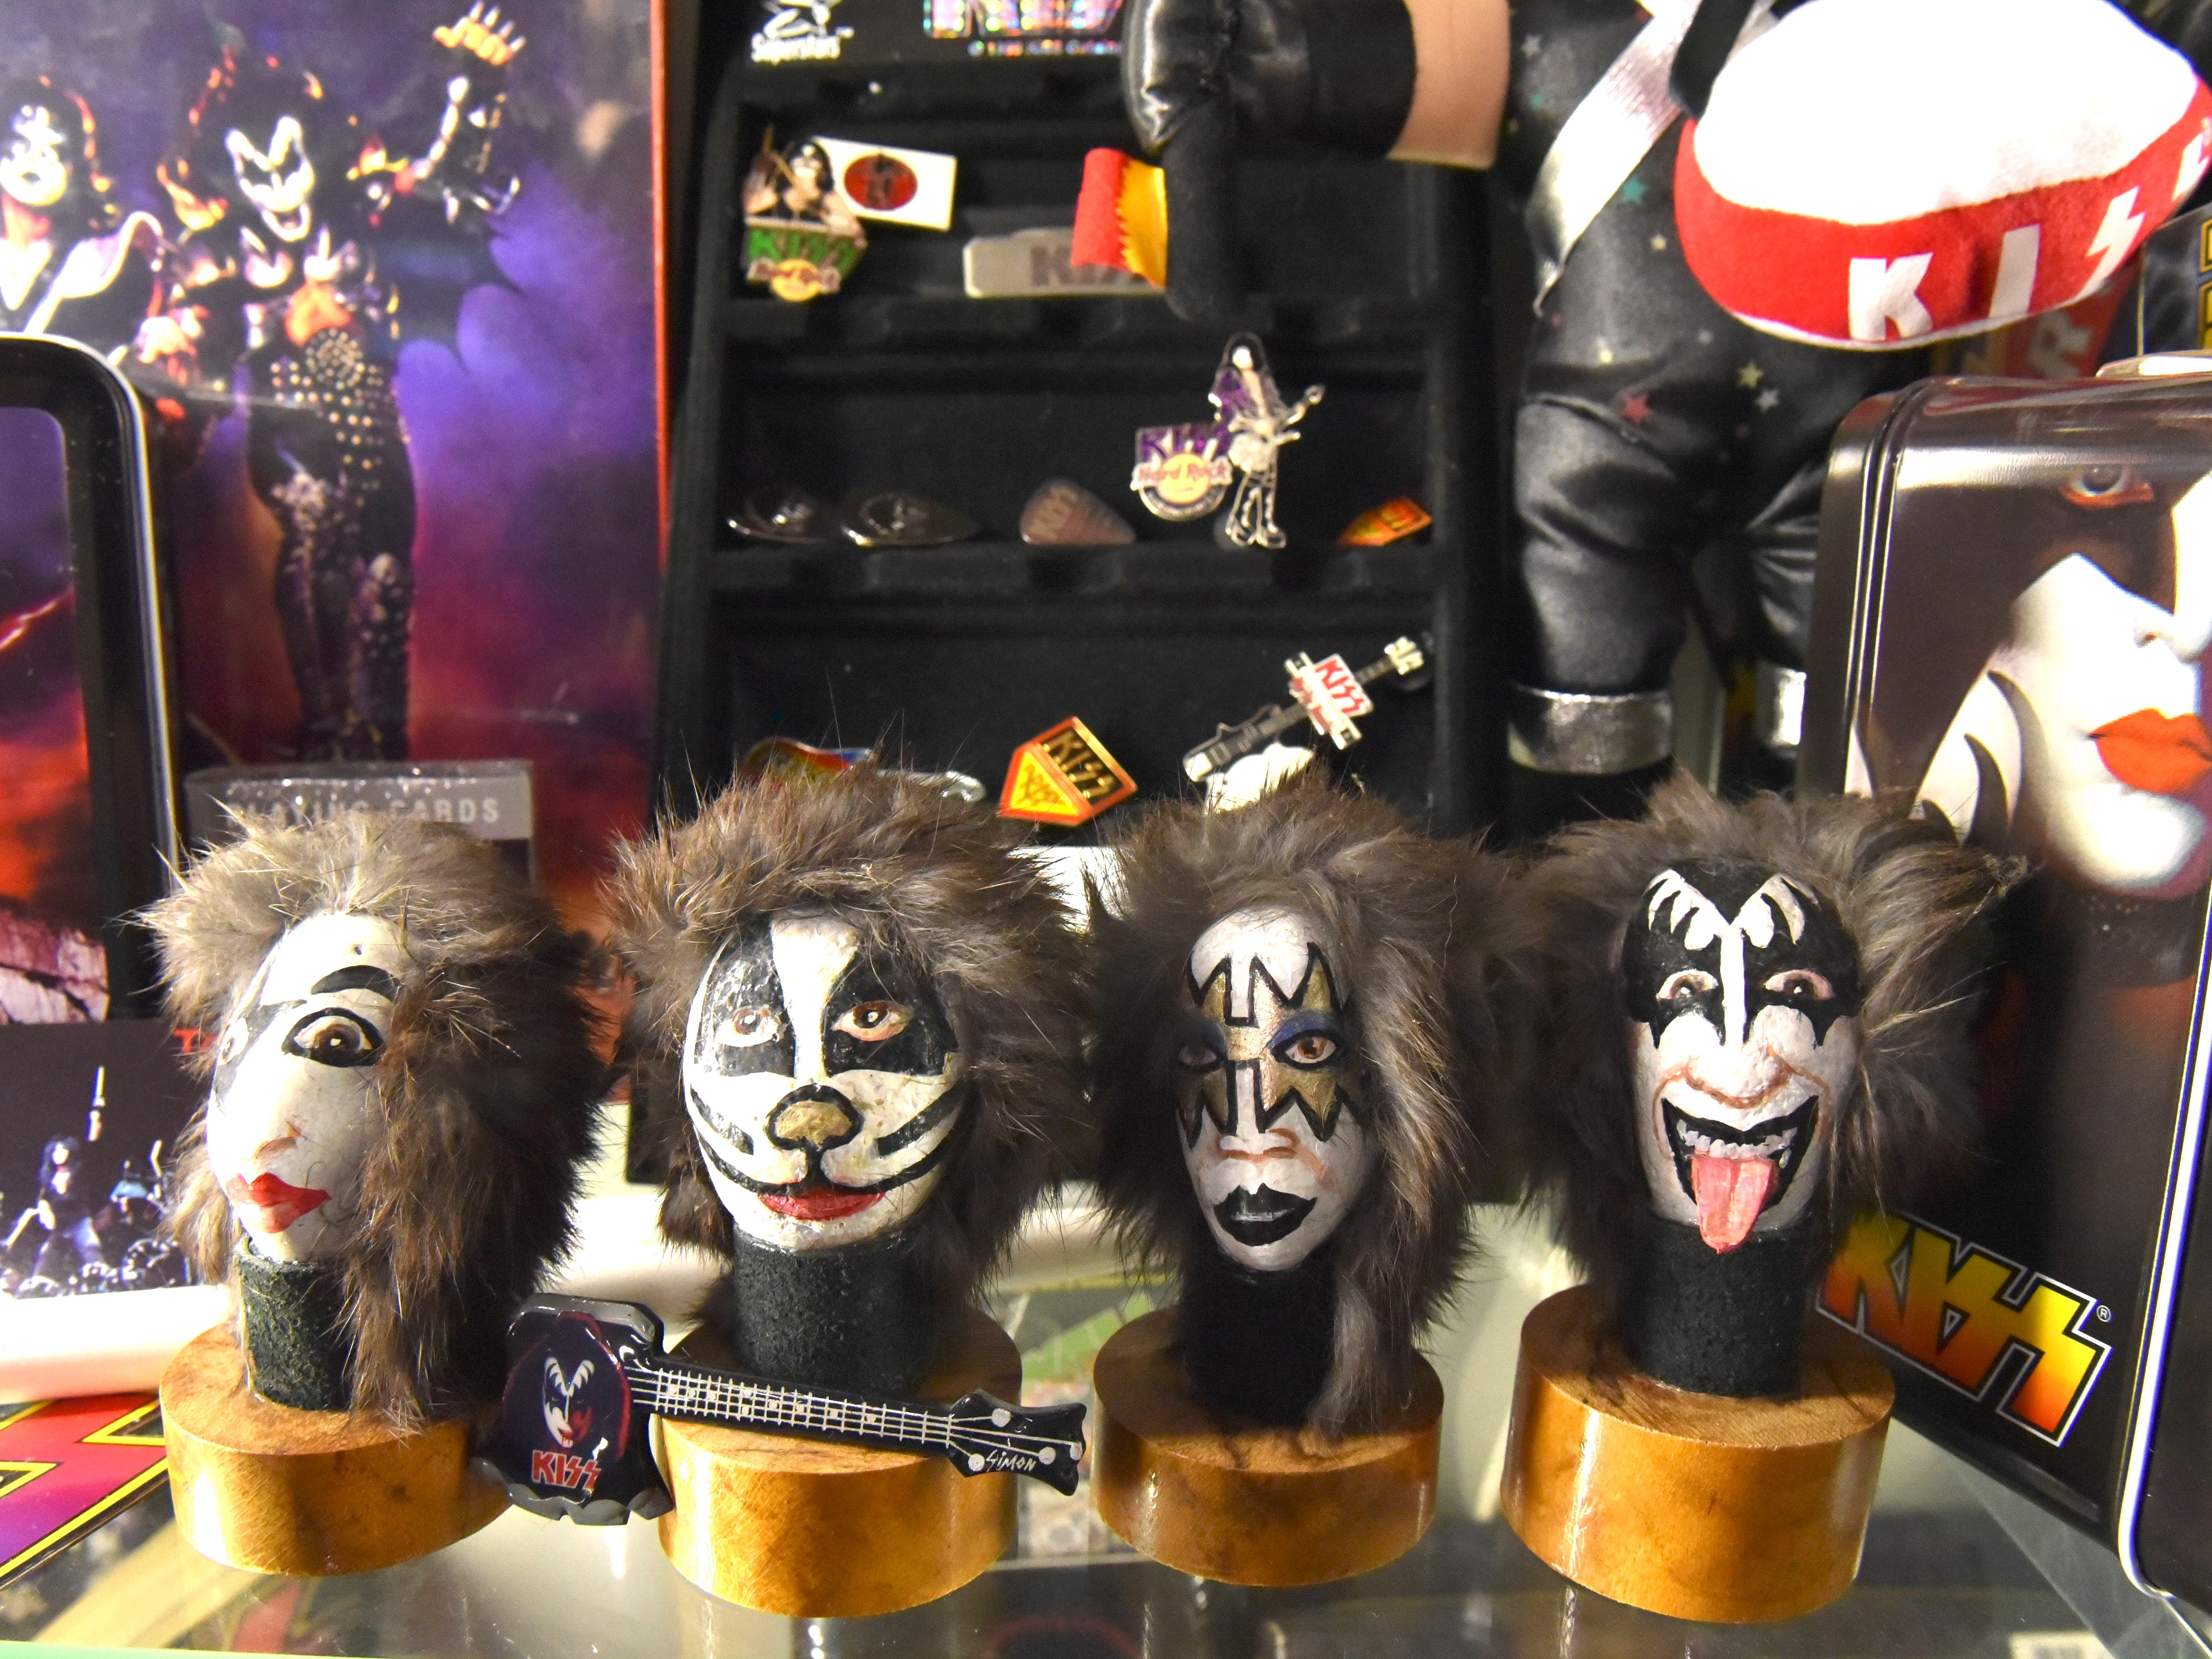 This is one of Terry's most prized possessions: rocks with the band members faces painted on them, which Terry bought from another Michigan KISS collector.